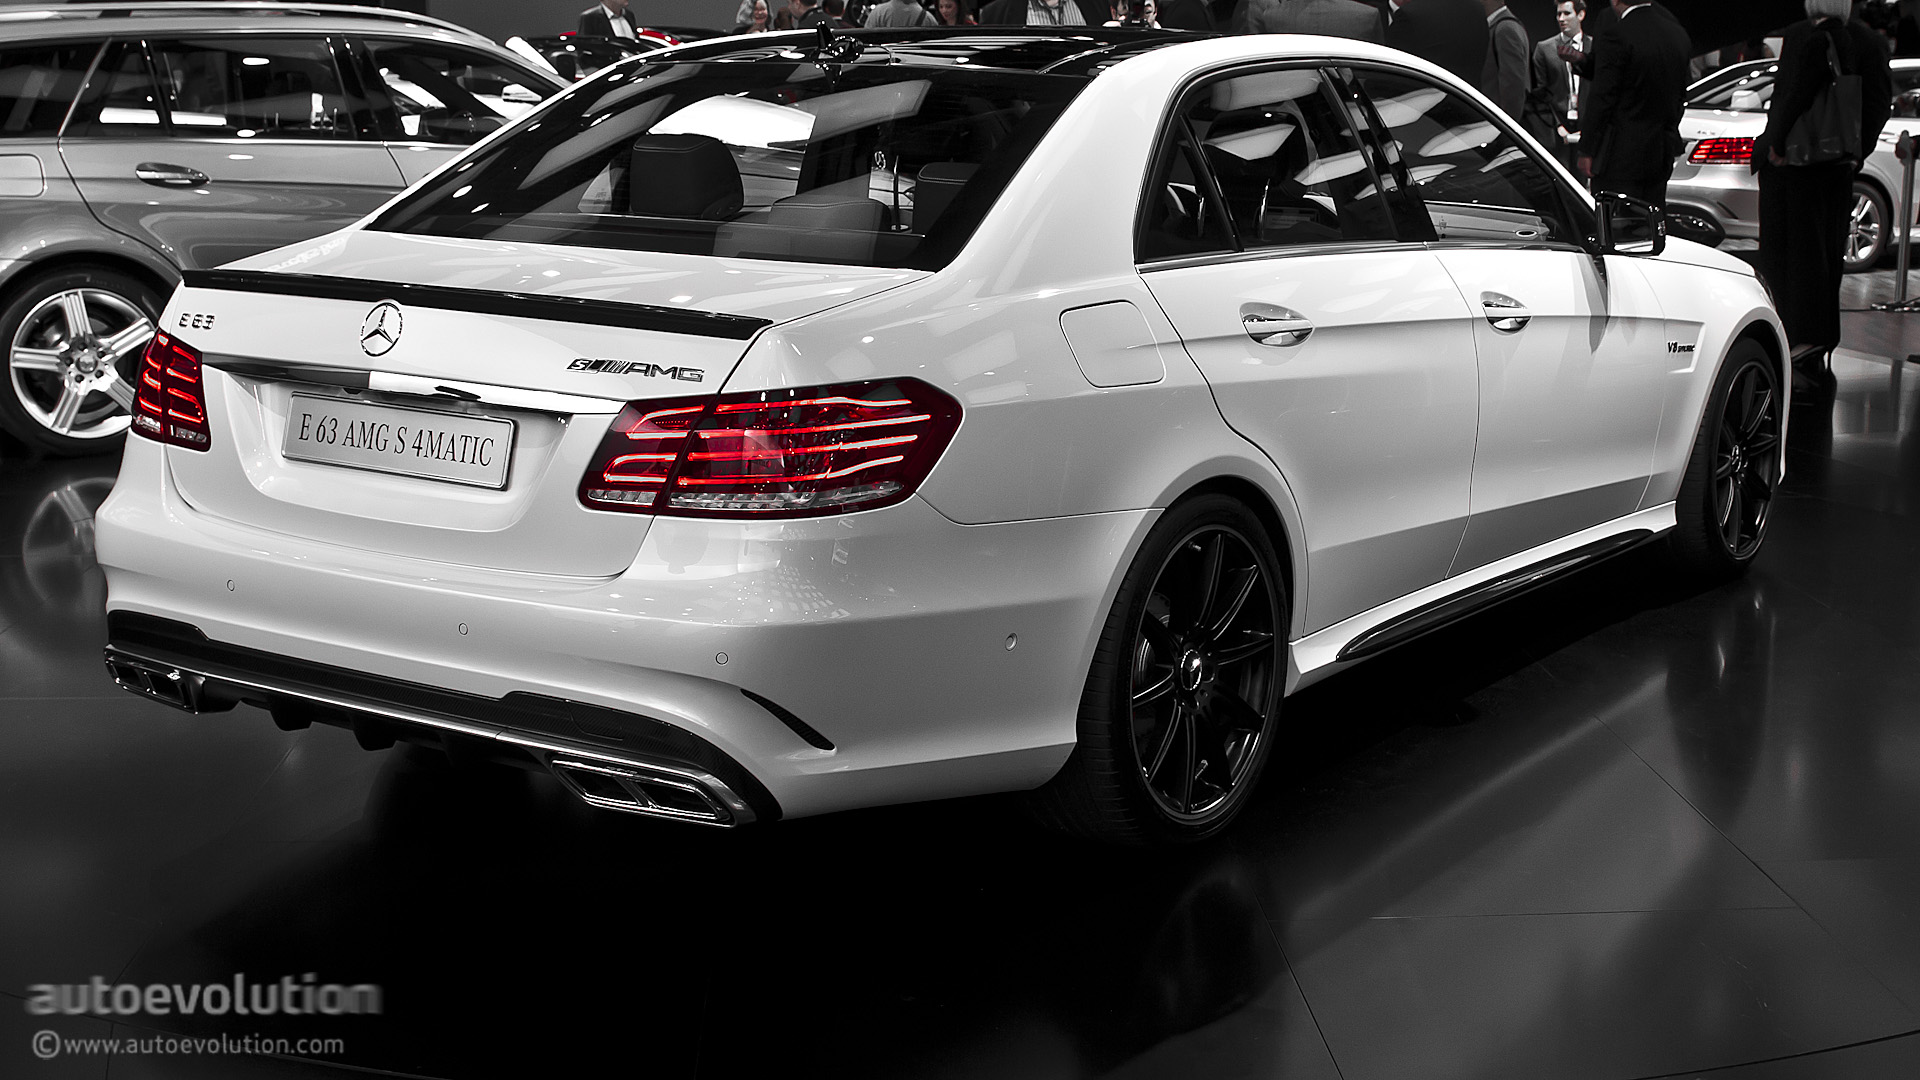 2013 naias mercedes benz e63 amg s 4matic live photos